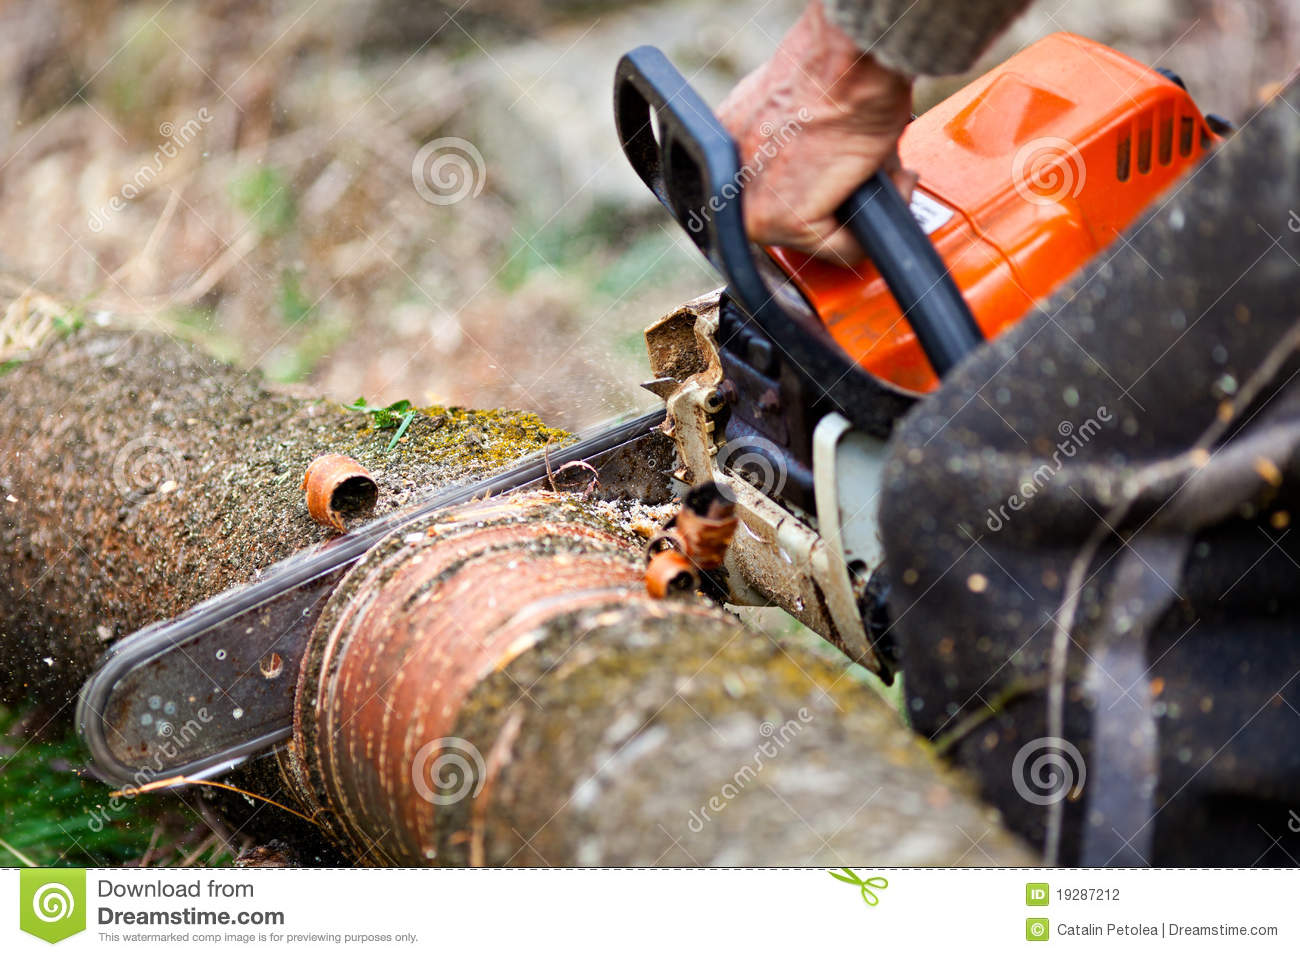 how to cut a tree trunk with a chainsaw